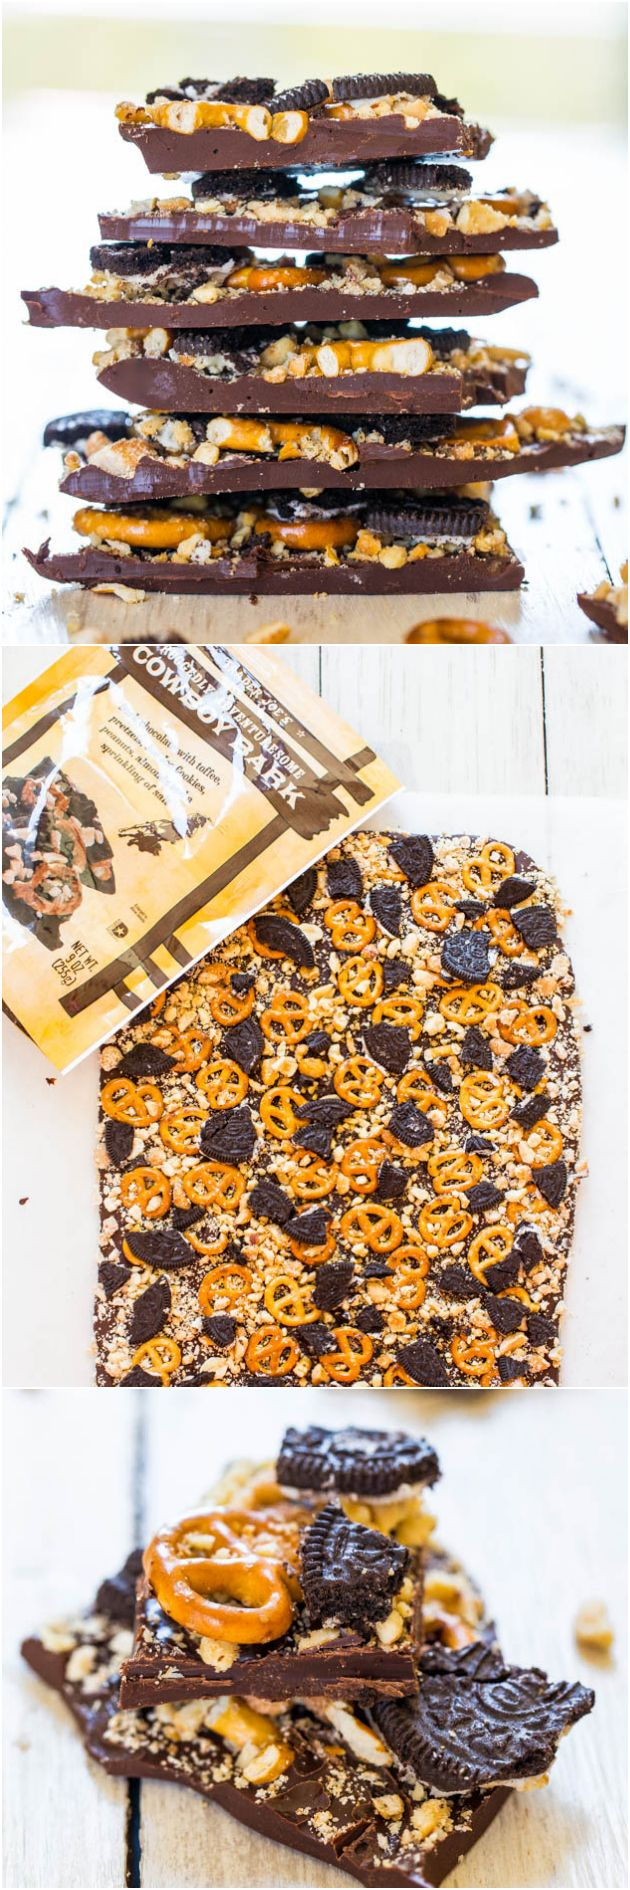 Cowboy Bark: Trader Joe's Copycat Recipe - Just like the real thing & ready in 5 minutes. Salty-and-sweet & supremely good!